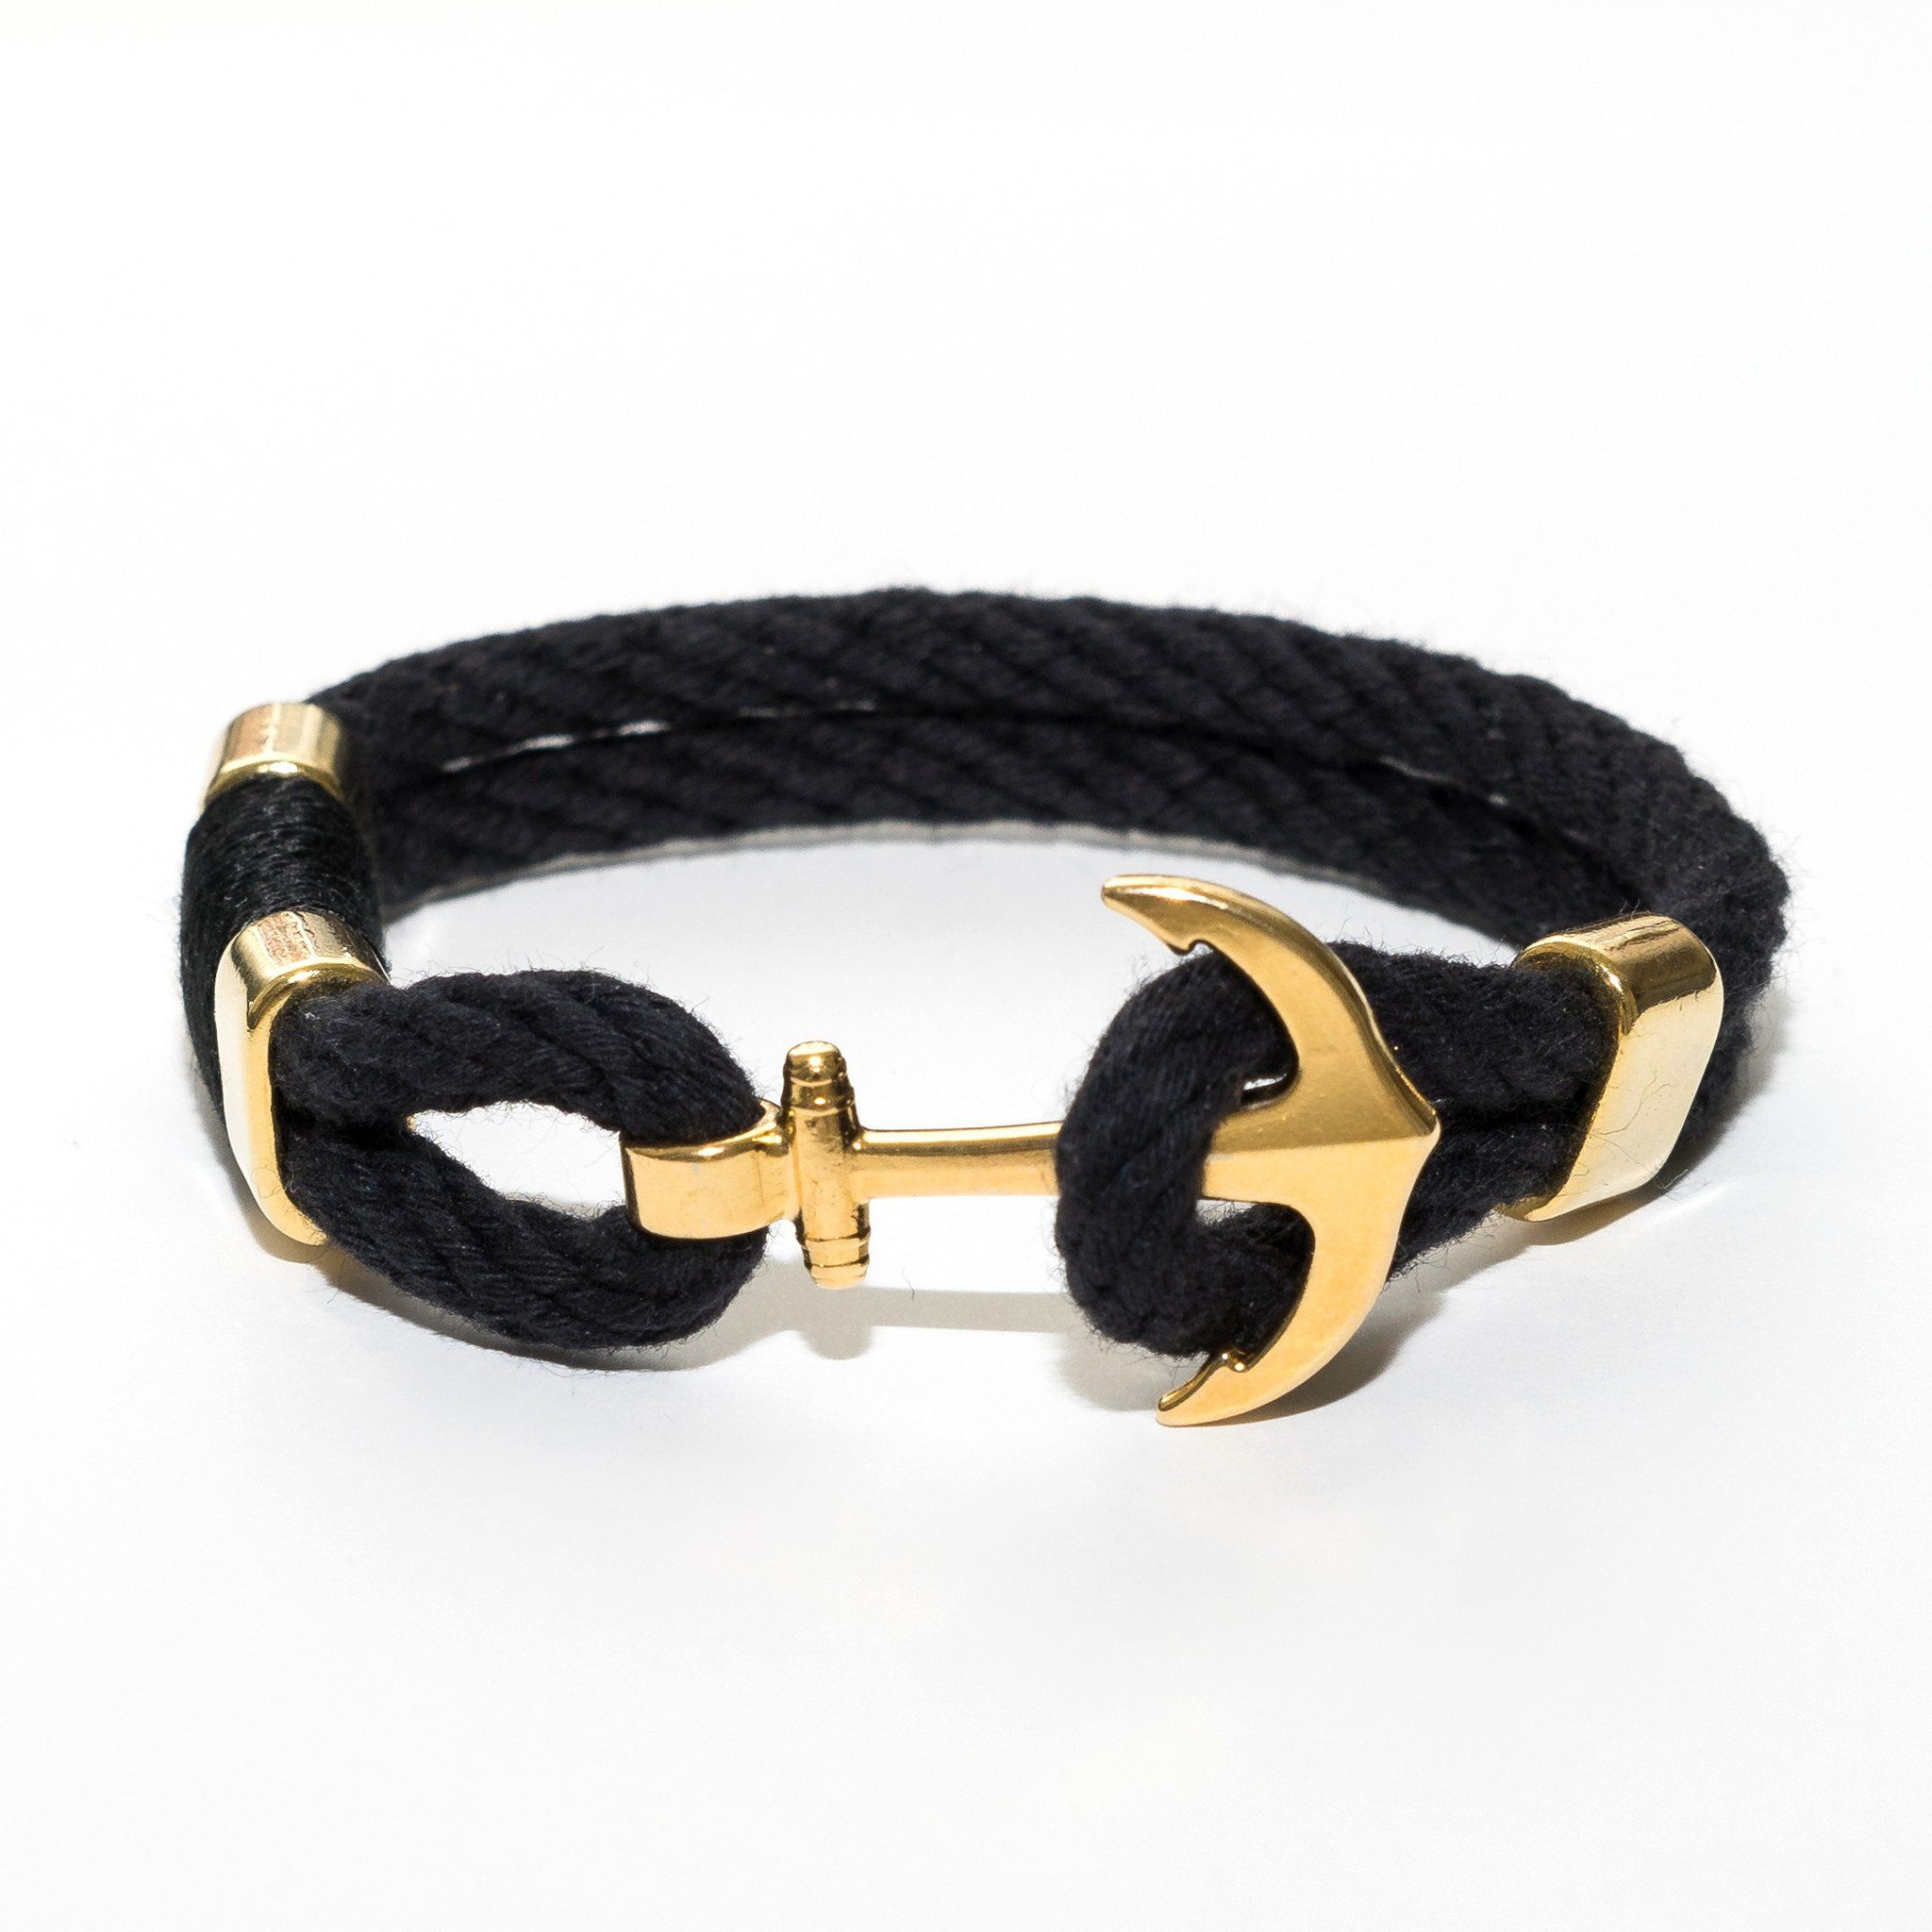 en gold collection black in stone lava bracelet and onyx thunderbolt